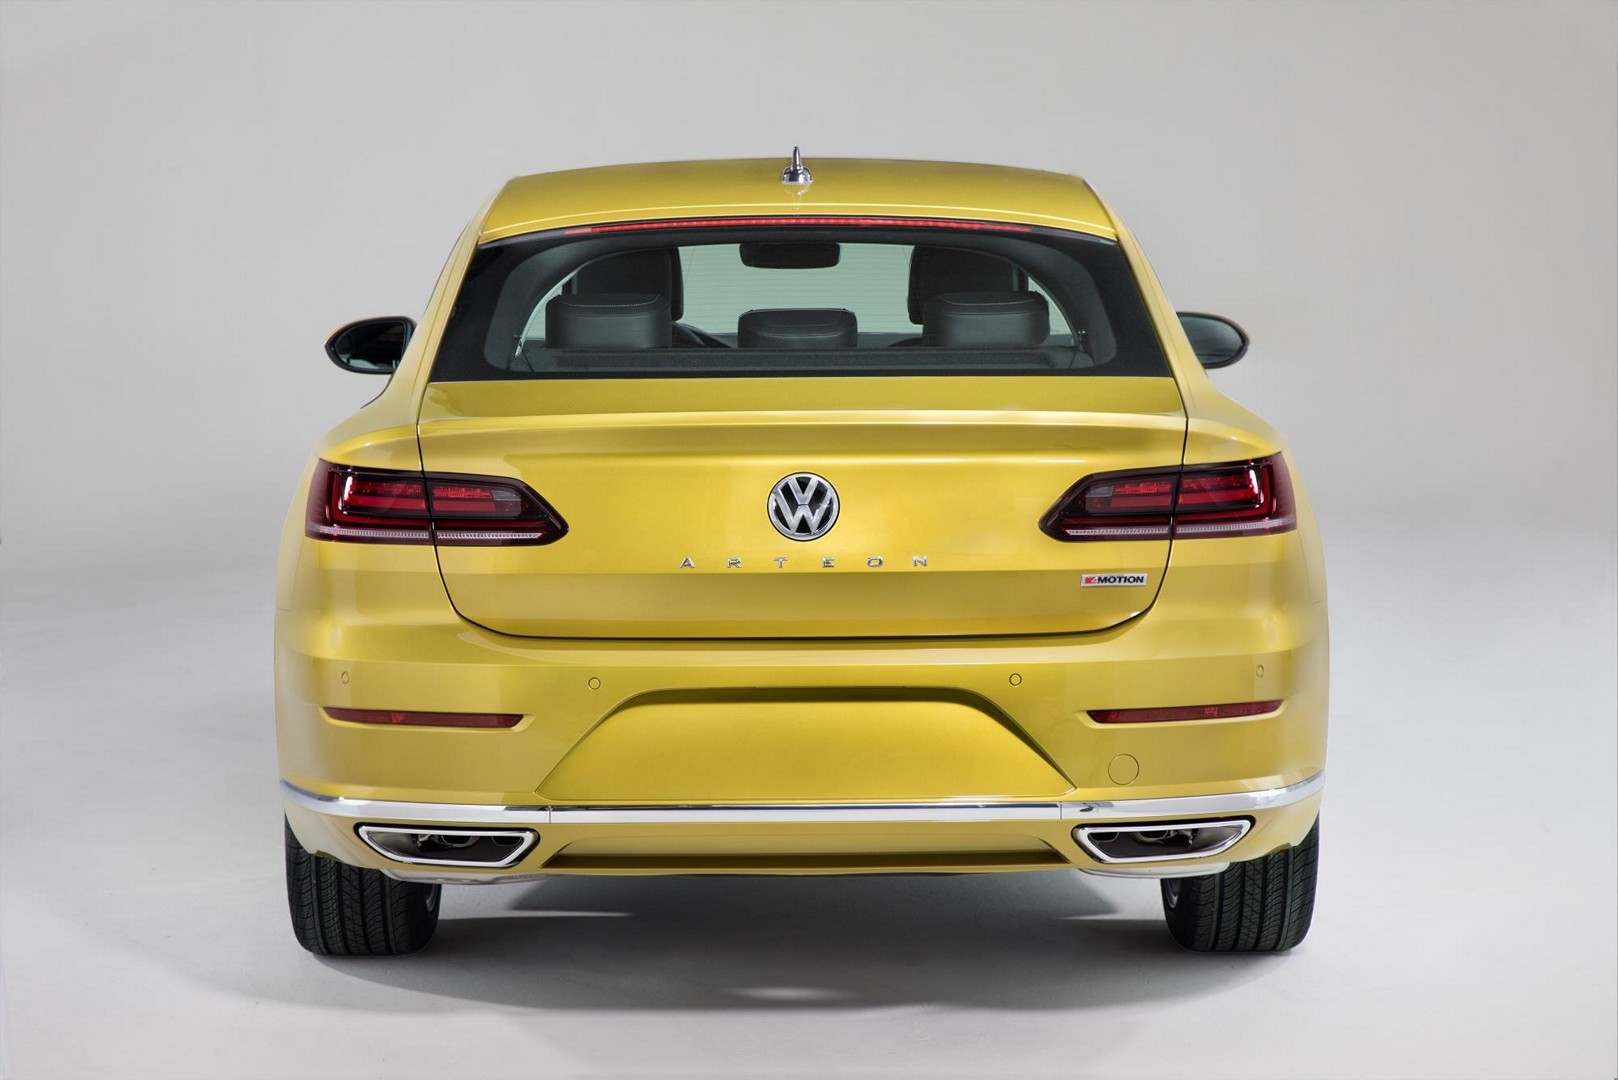 2019 vw arteon flagship sedan launched in chicago autoevolution. Black Bedroom Furniture Sets. Home Design Ideas